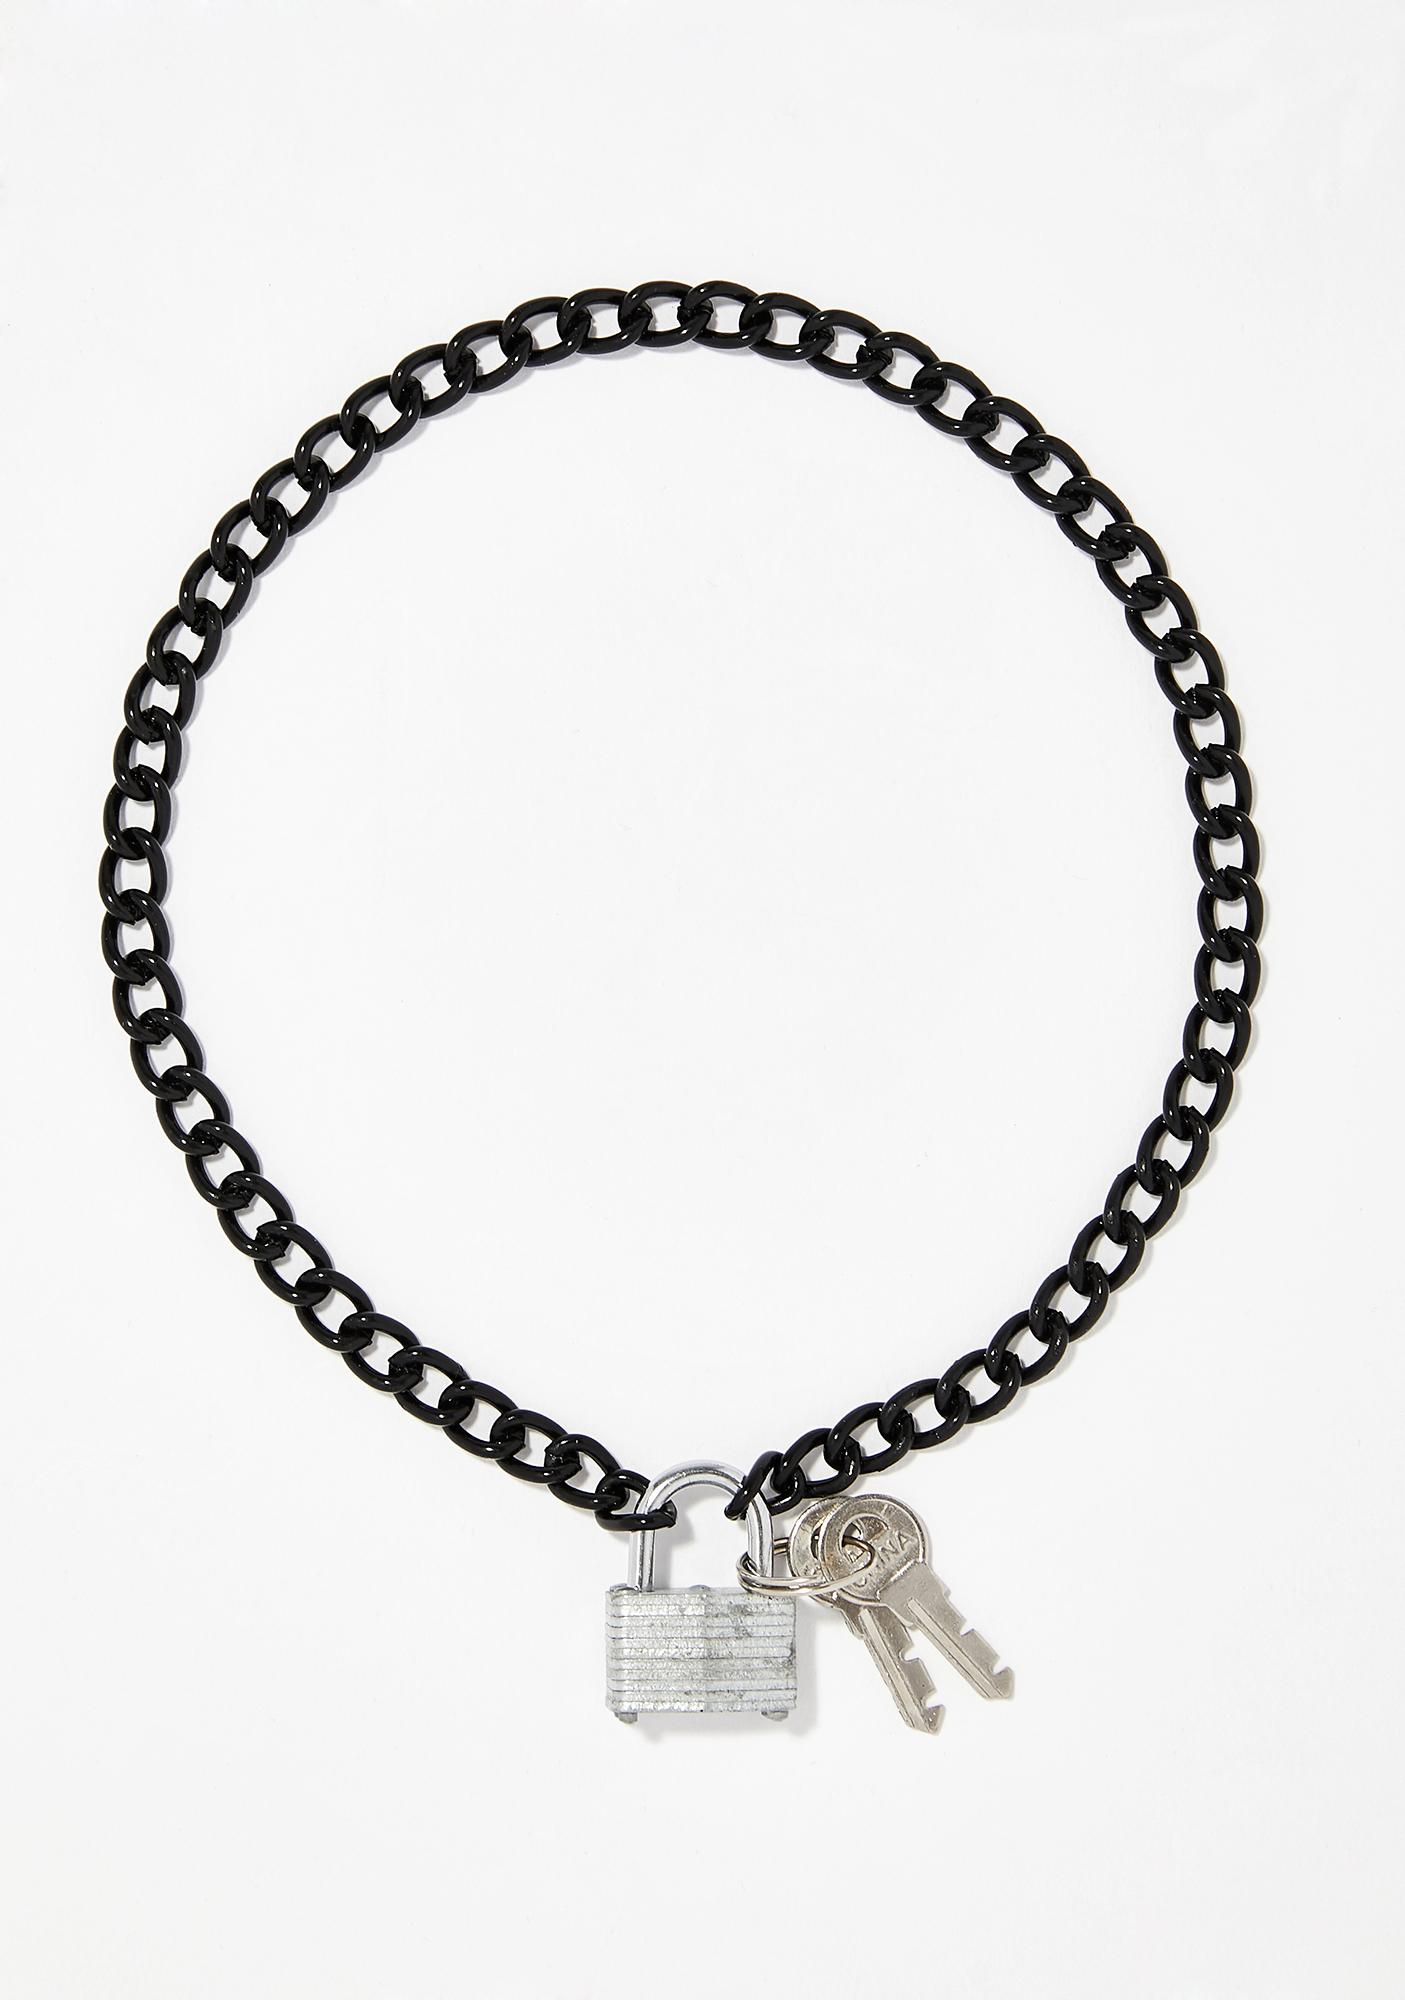 Unlocked Potential Chain Necklace